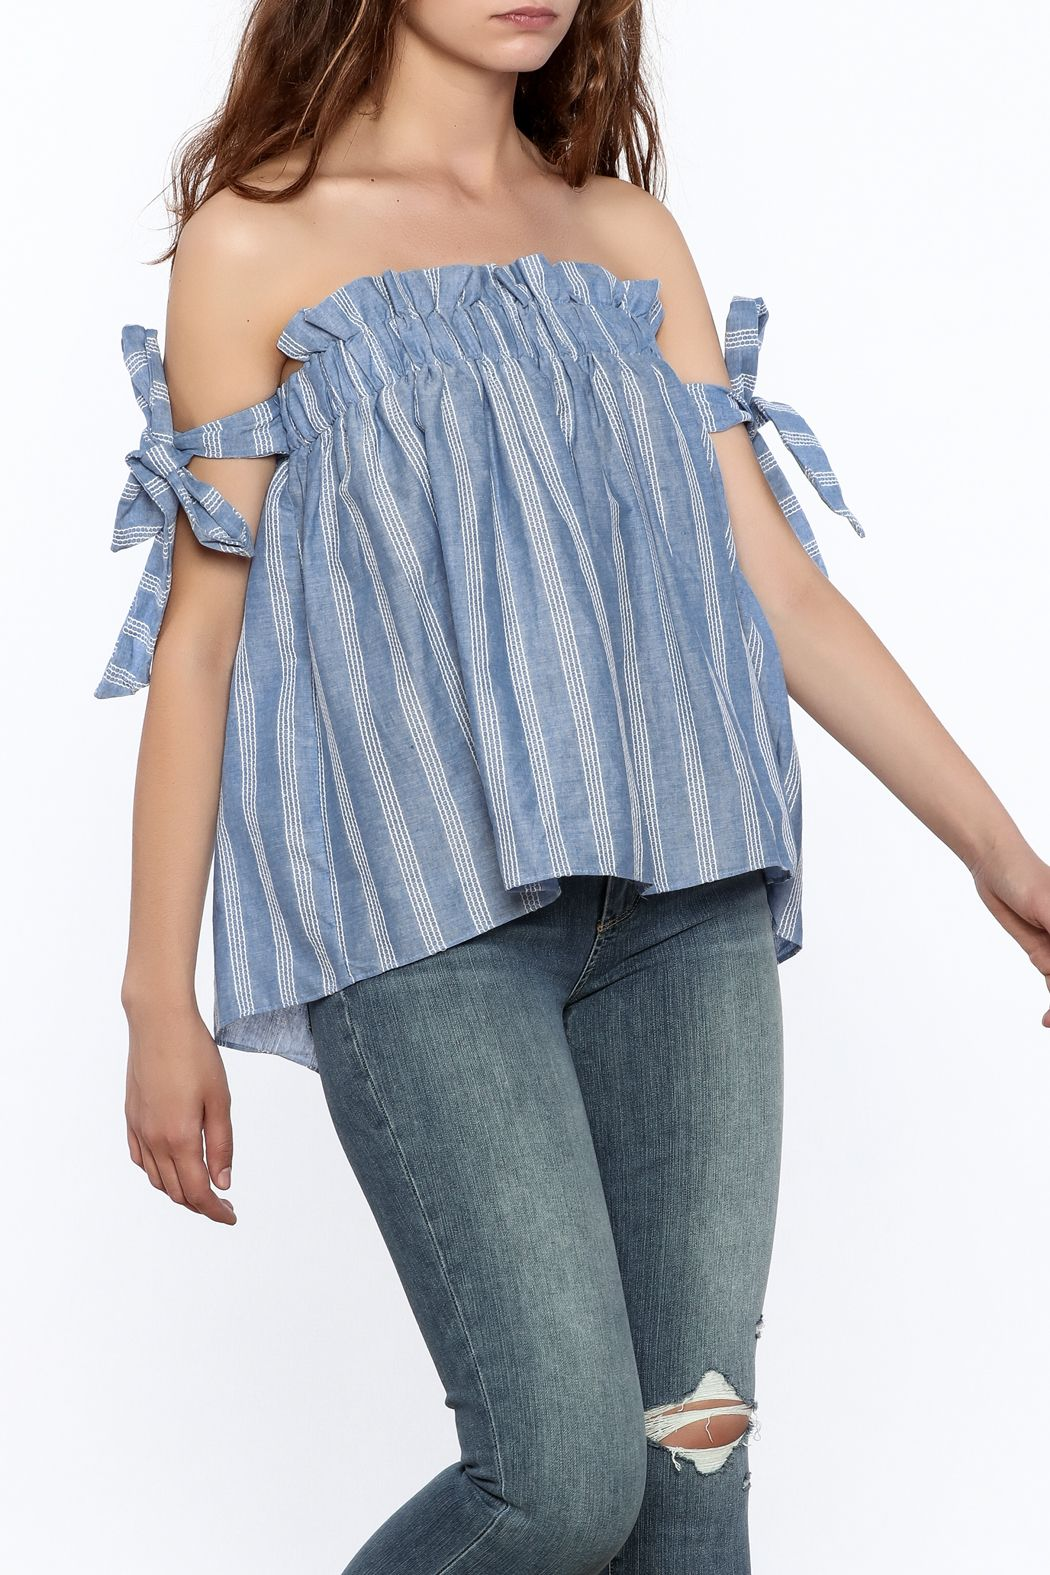 db4045dbd4a9b Blue boxy top with white stripe print detail and off-shoulder short  sleeves. Elasticized chest band and tie-up sleeves. Stripe Off Shoulder Top  by Do   Be.